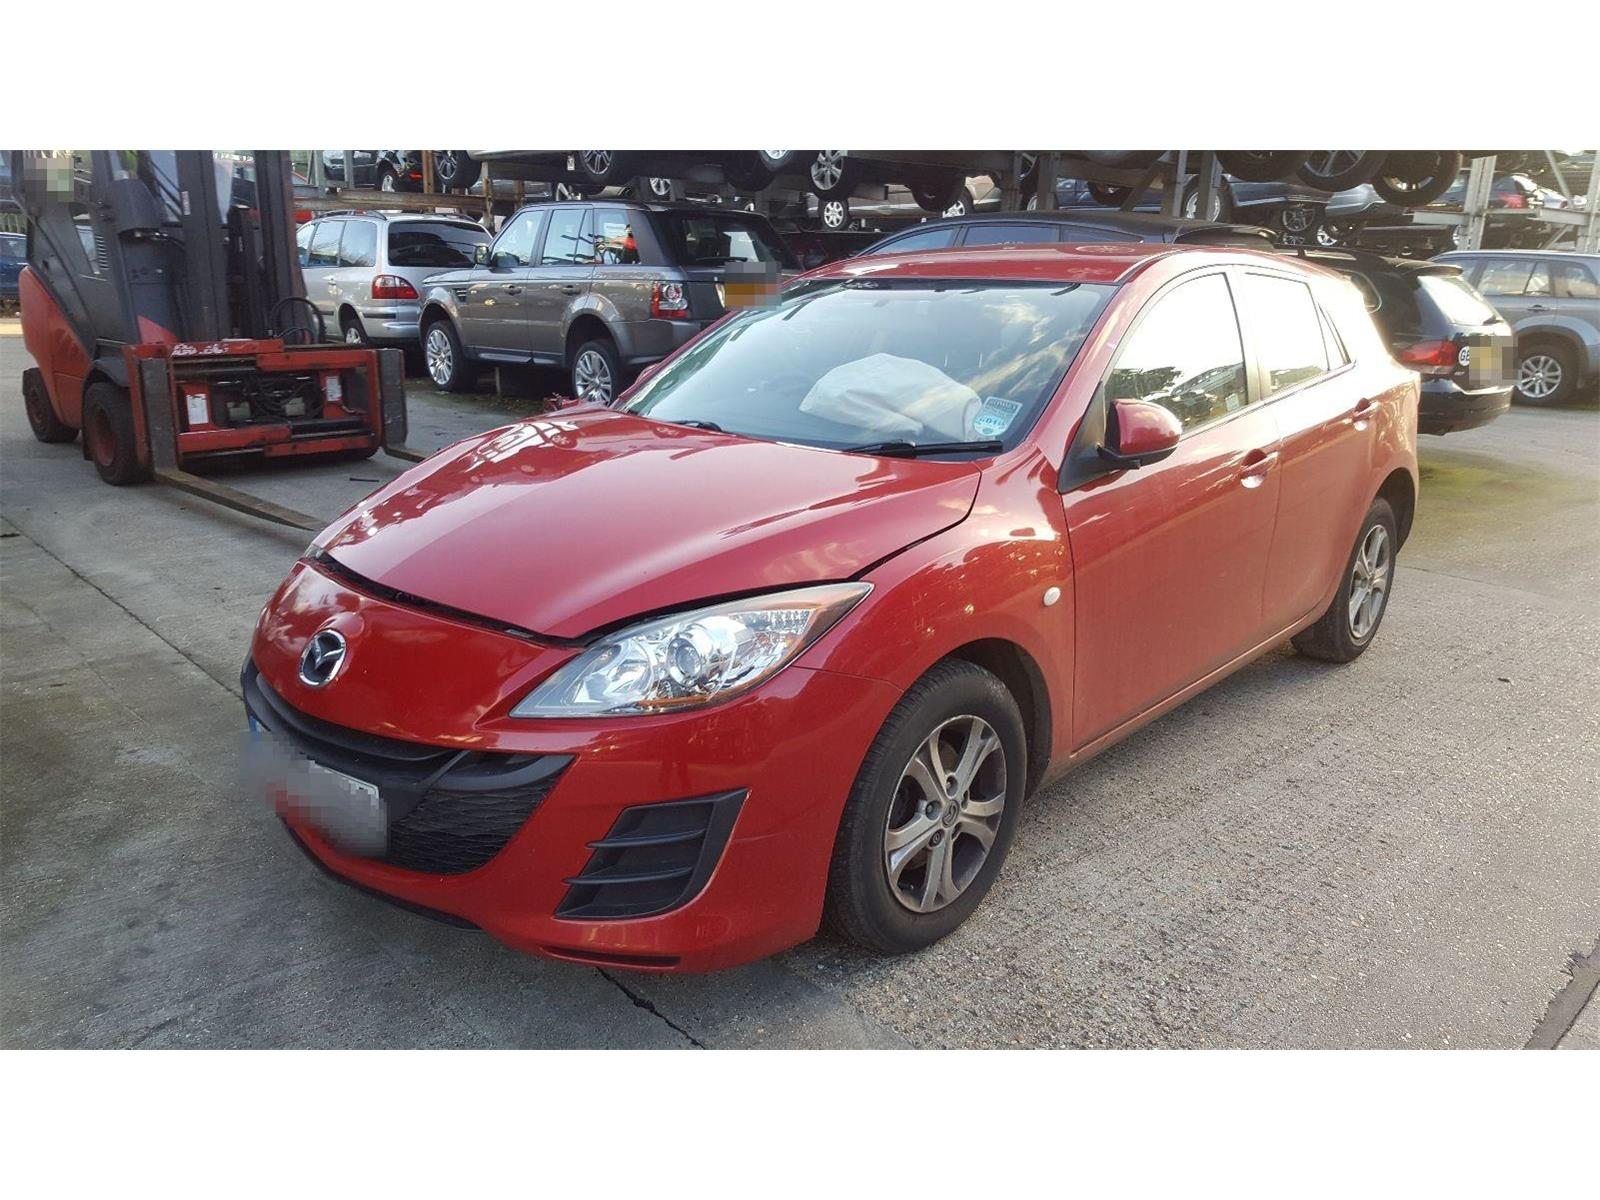 Mazda 3 2008 To 2011 TS 5 Door Hatchback